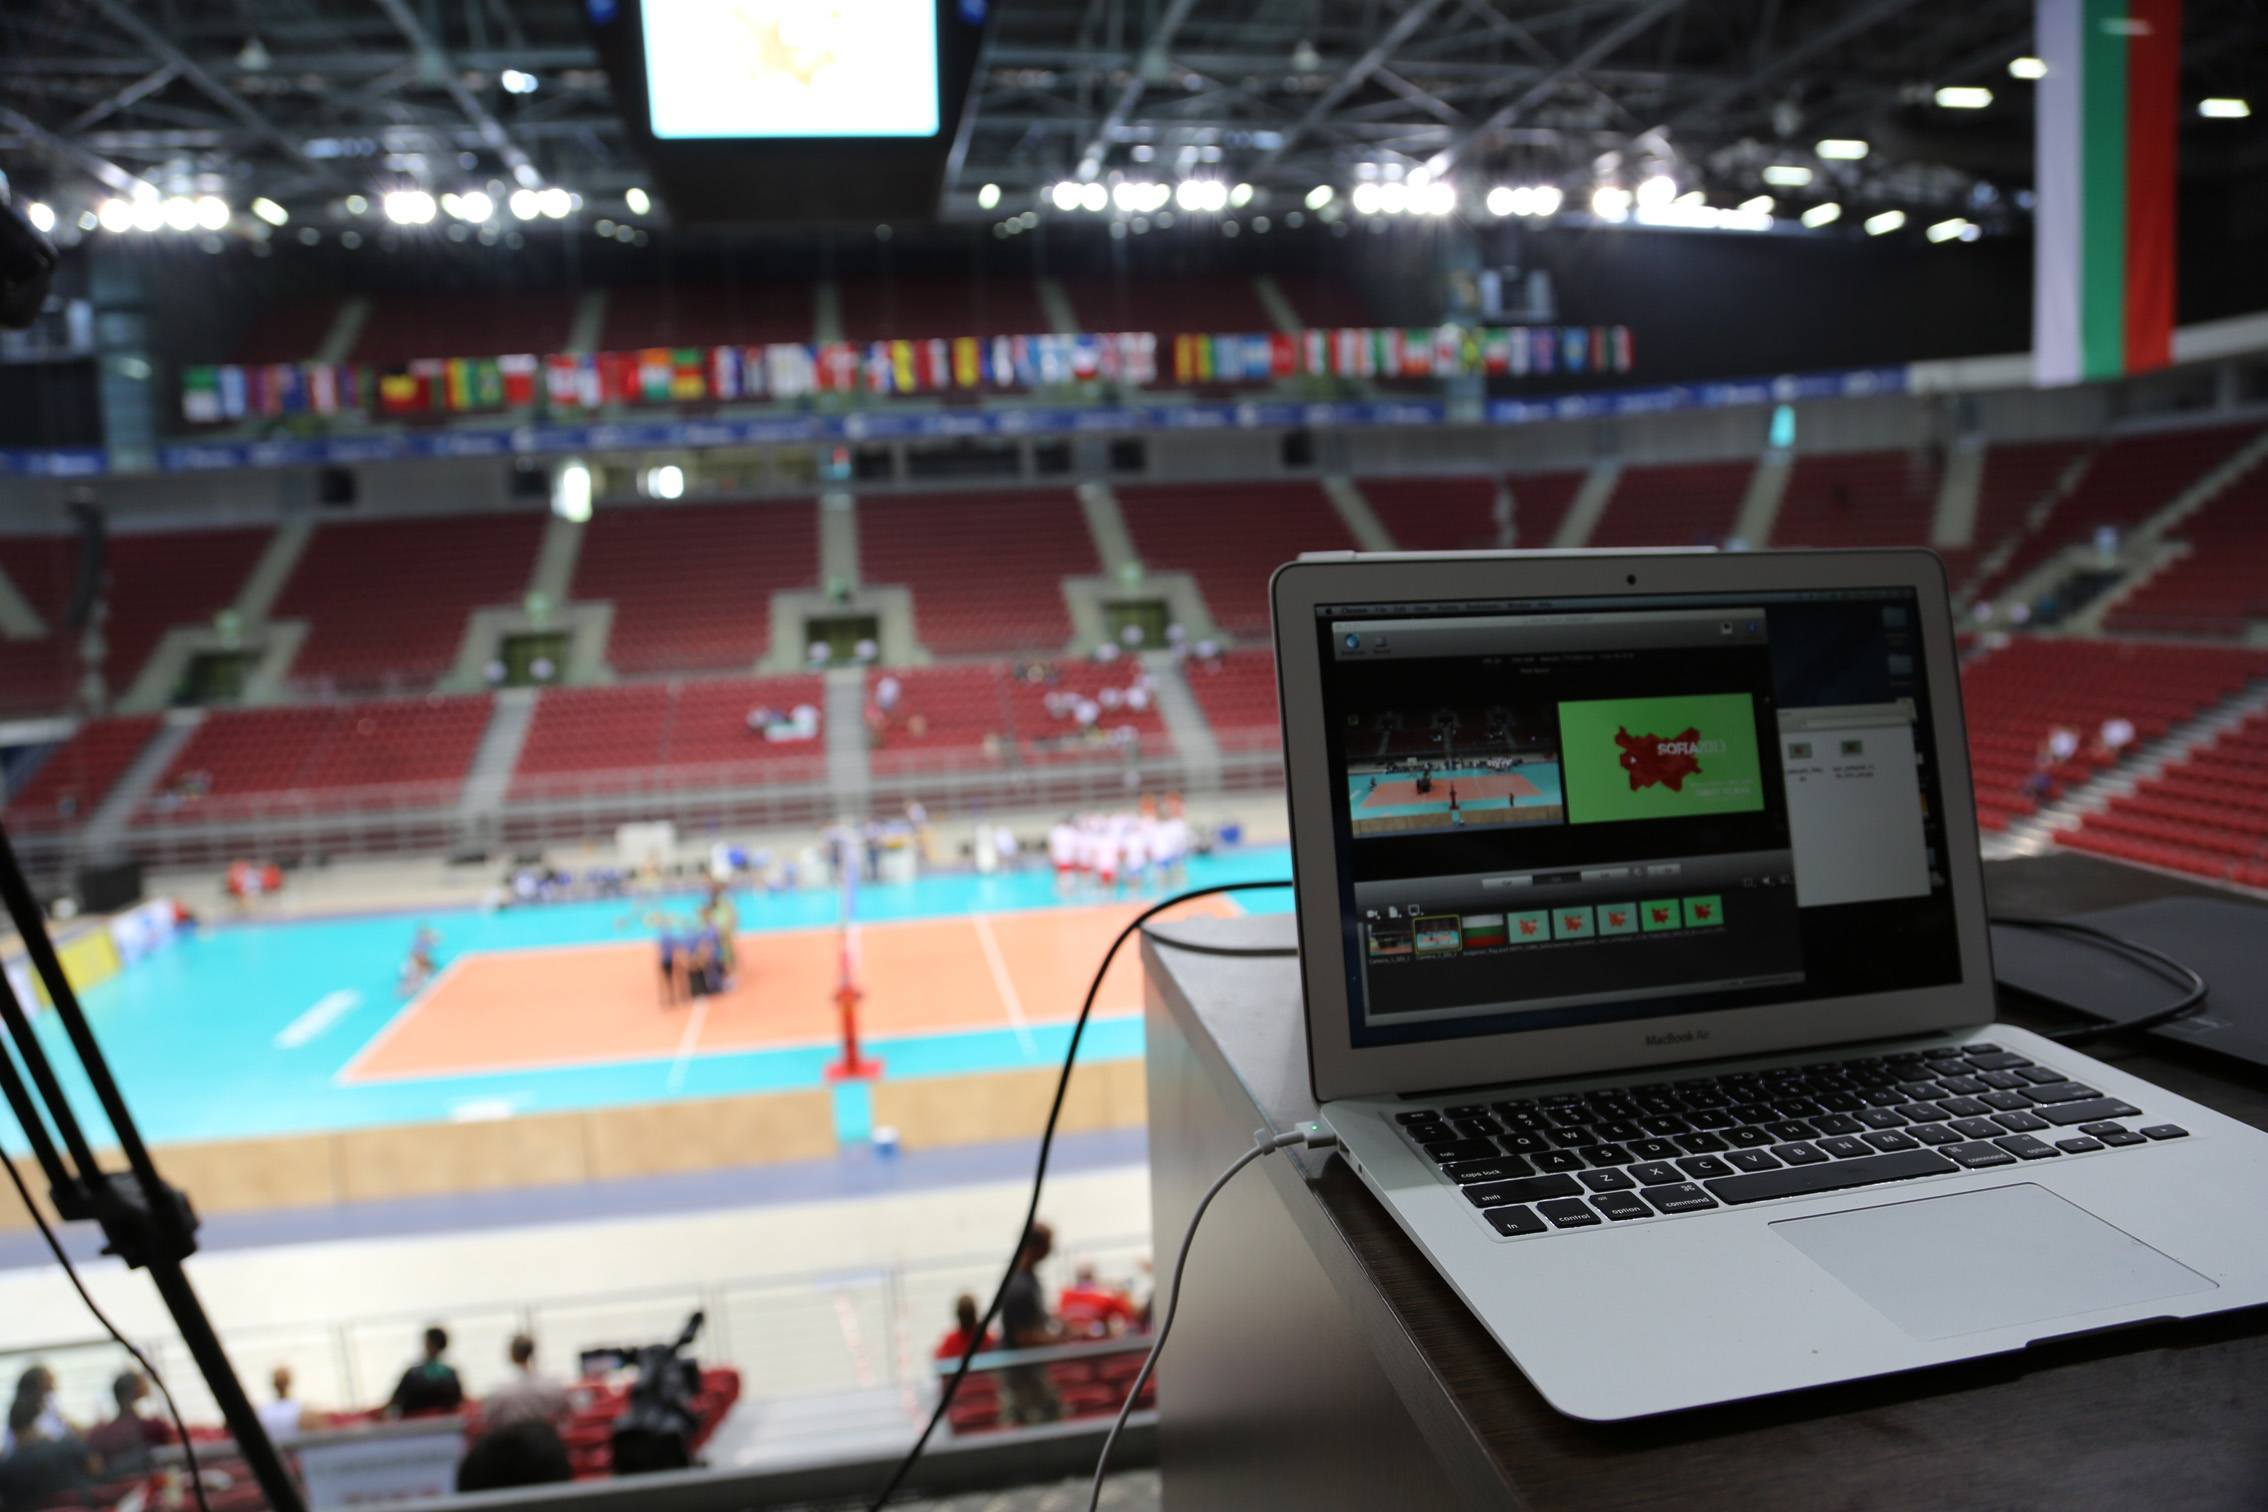 Media Team to provide live coverage of the International multi-sport event of Summer Deaflympic Game in Sofia Bulgaria